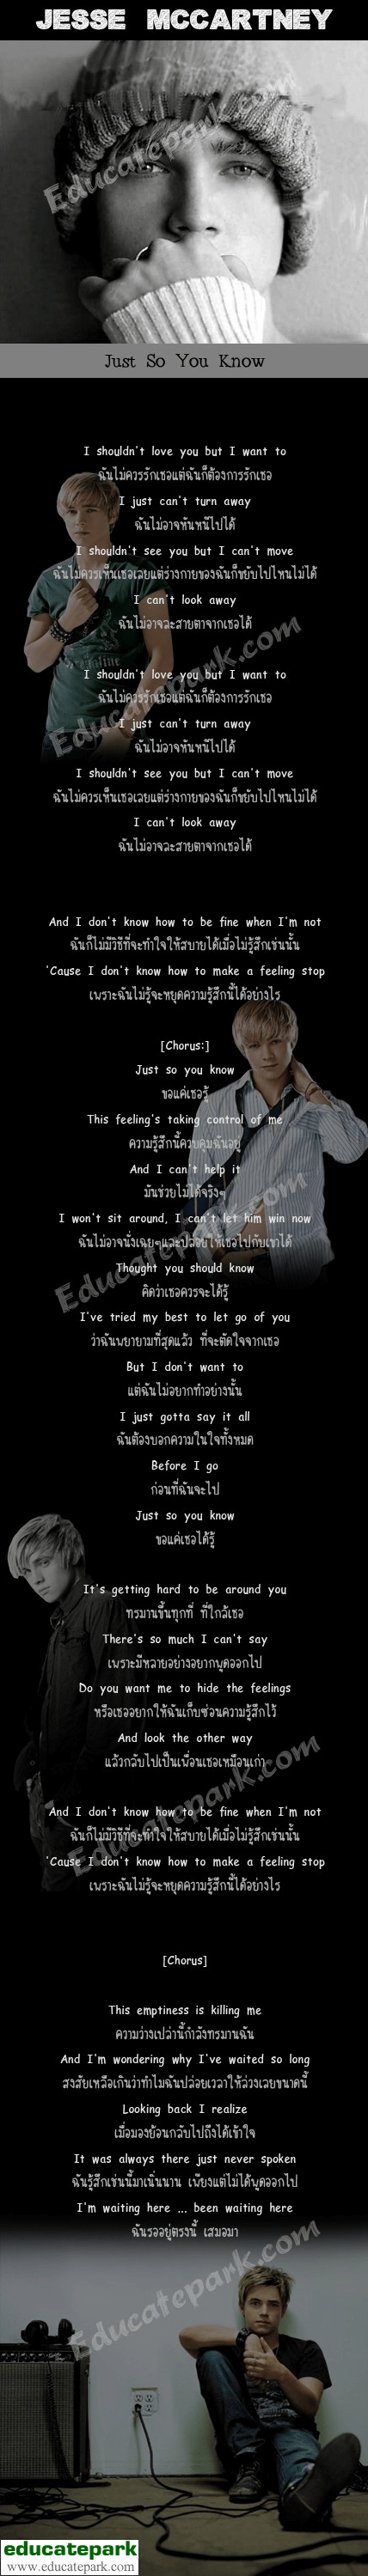 แปลเพลง Just So You Know - Jesse McCartney